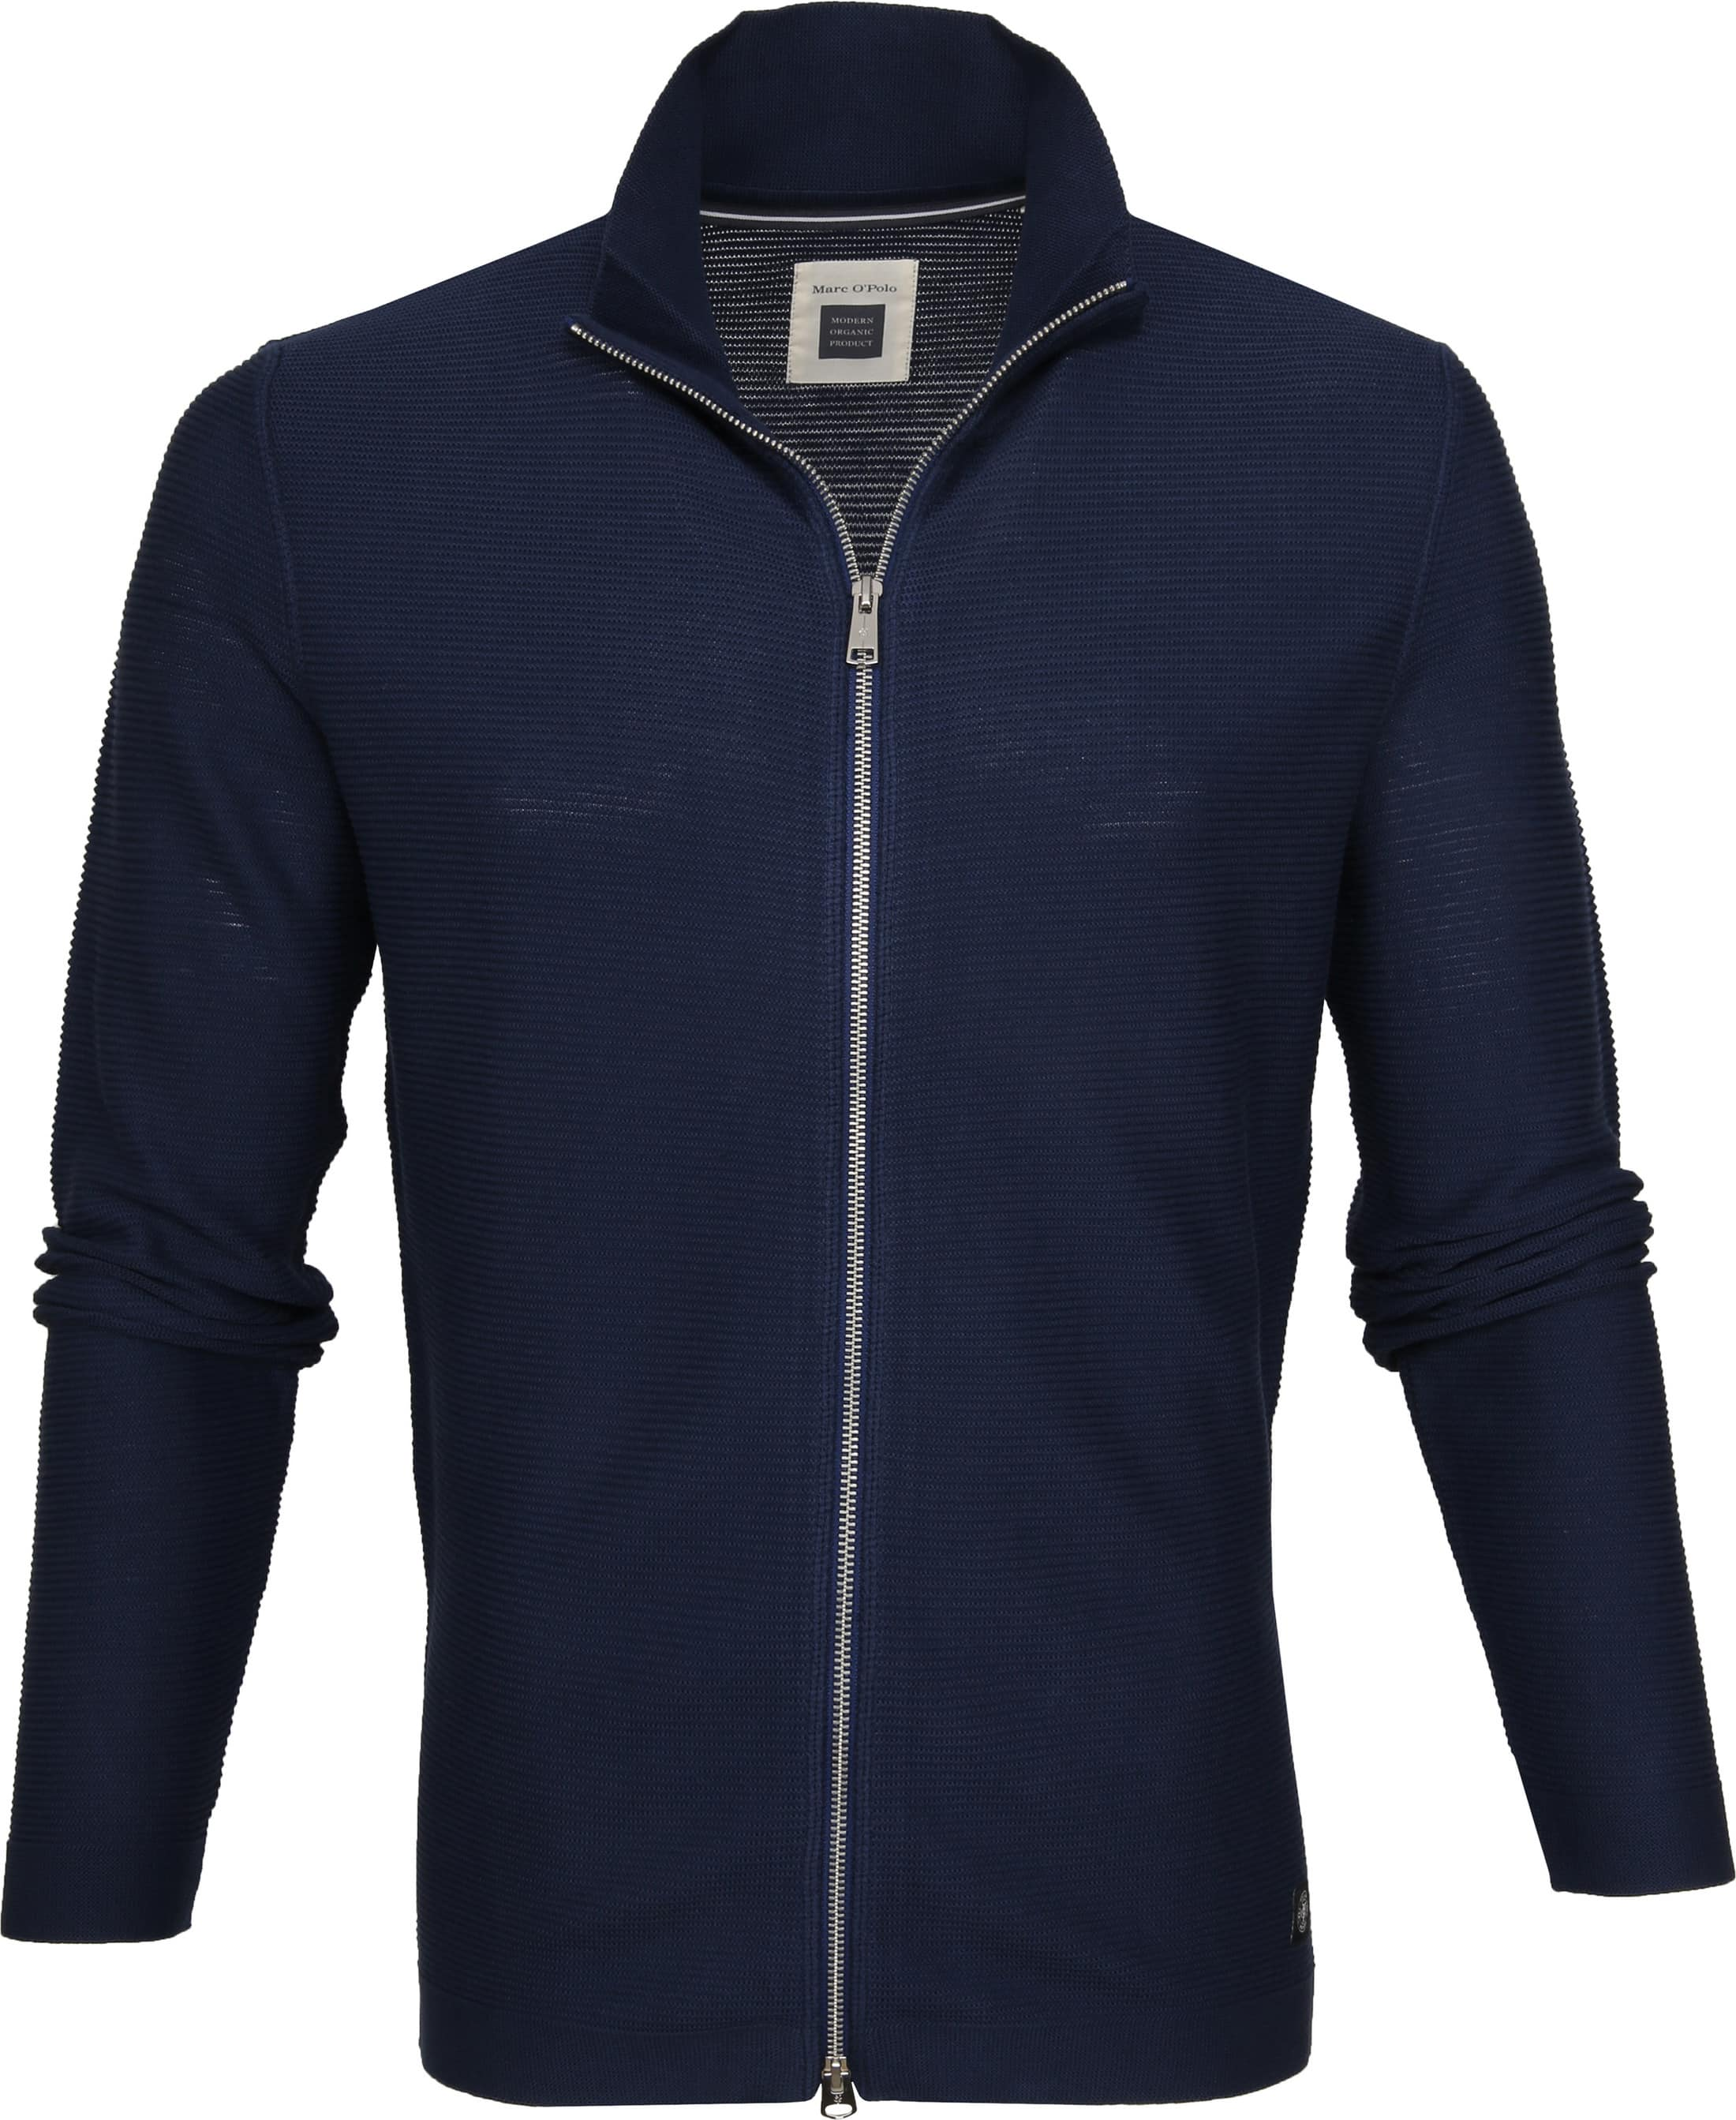 Marc O'Polo Cardigan Navy 927500861064 order online | Suitable